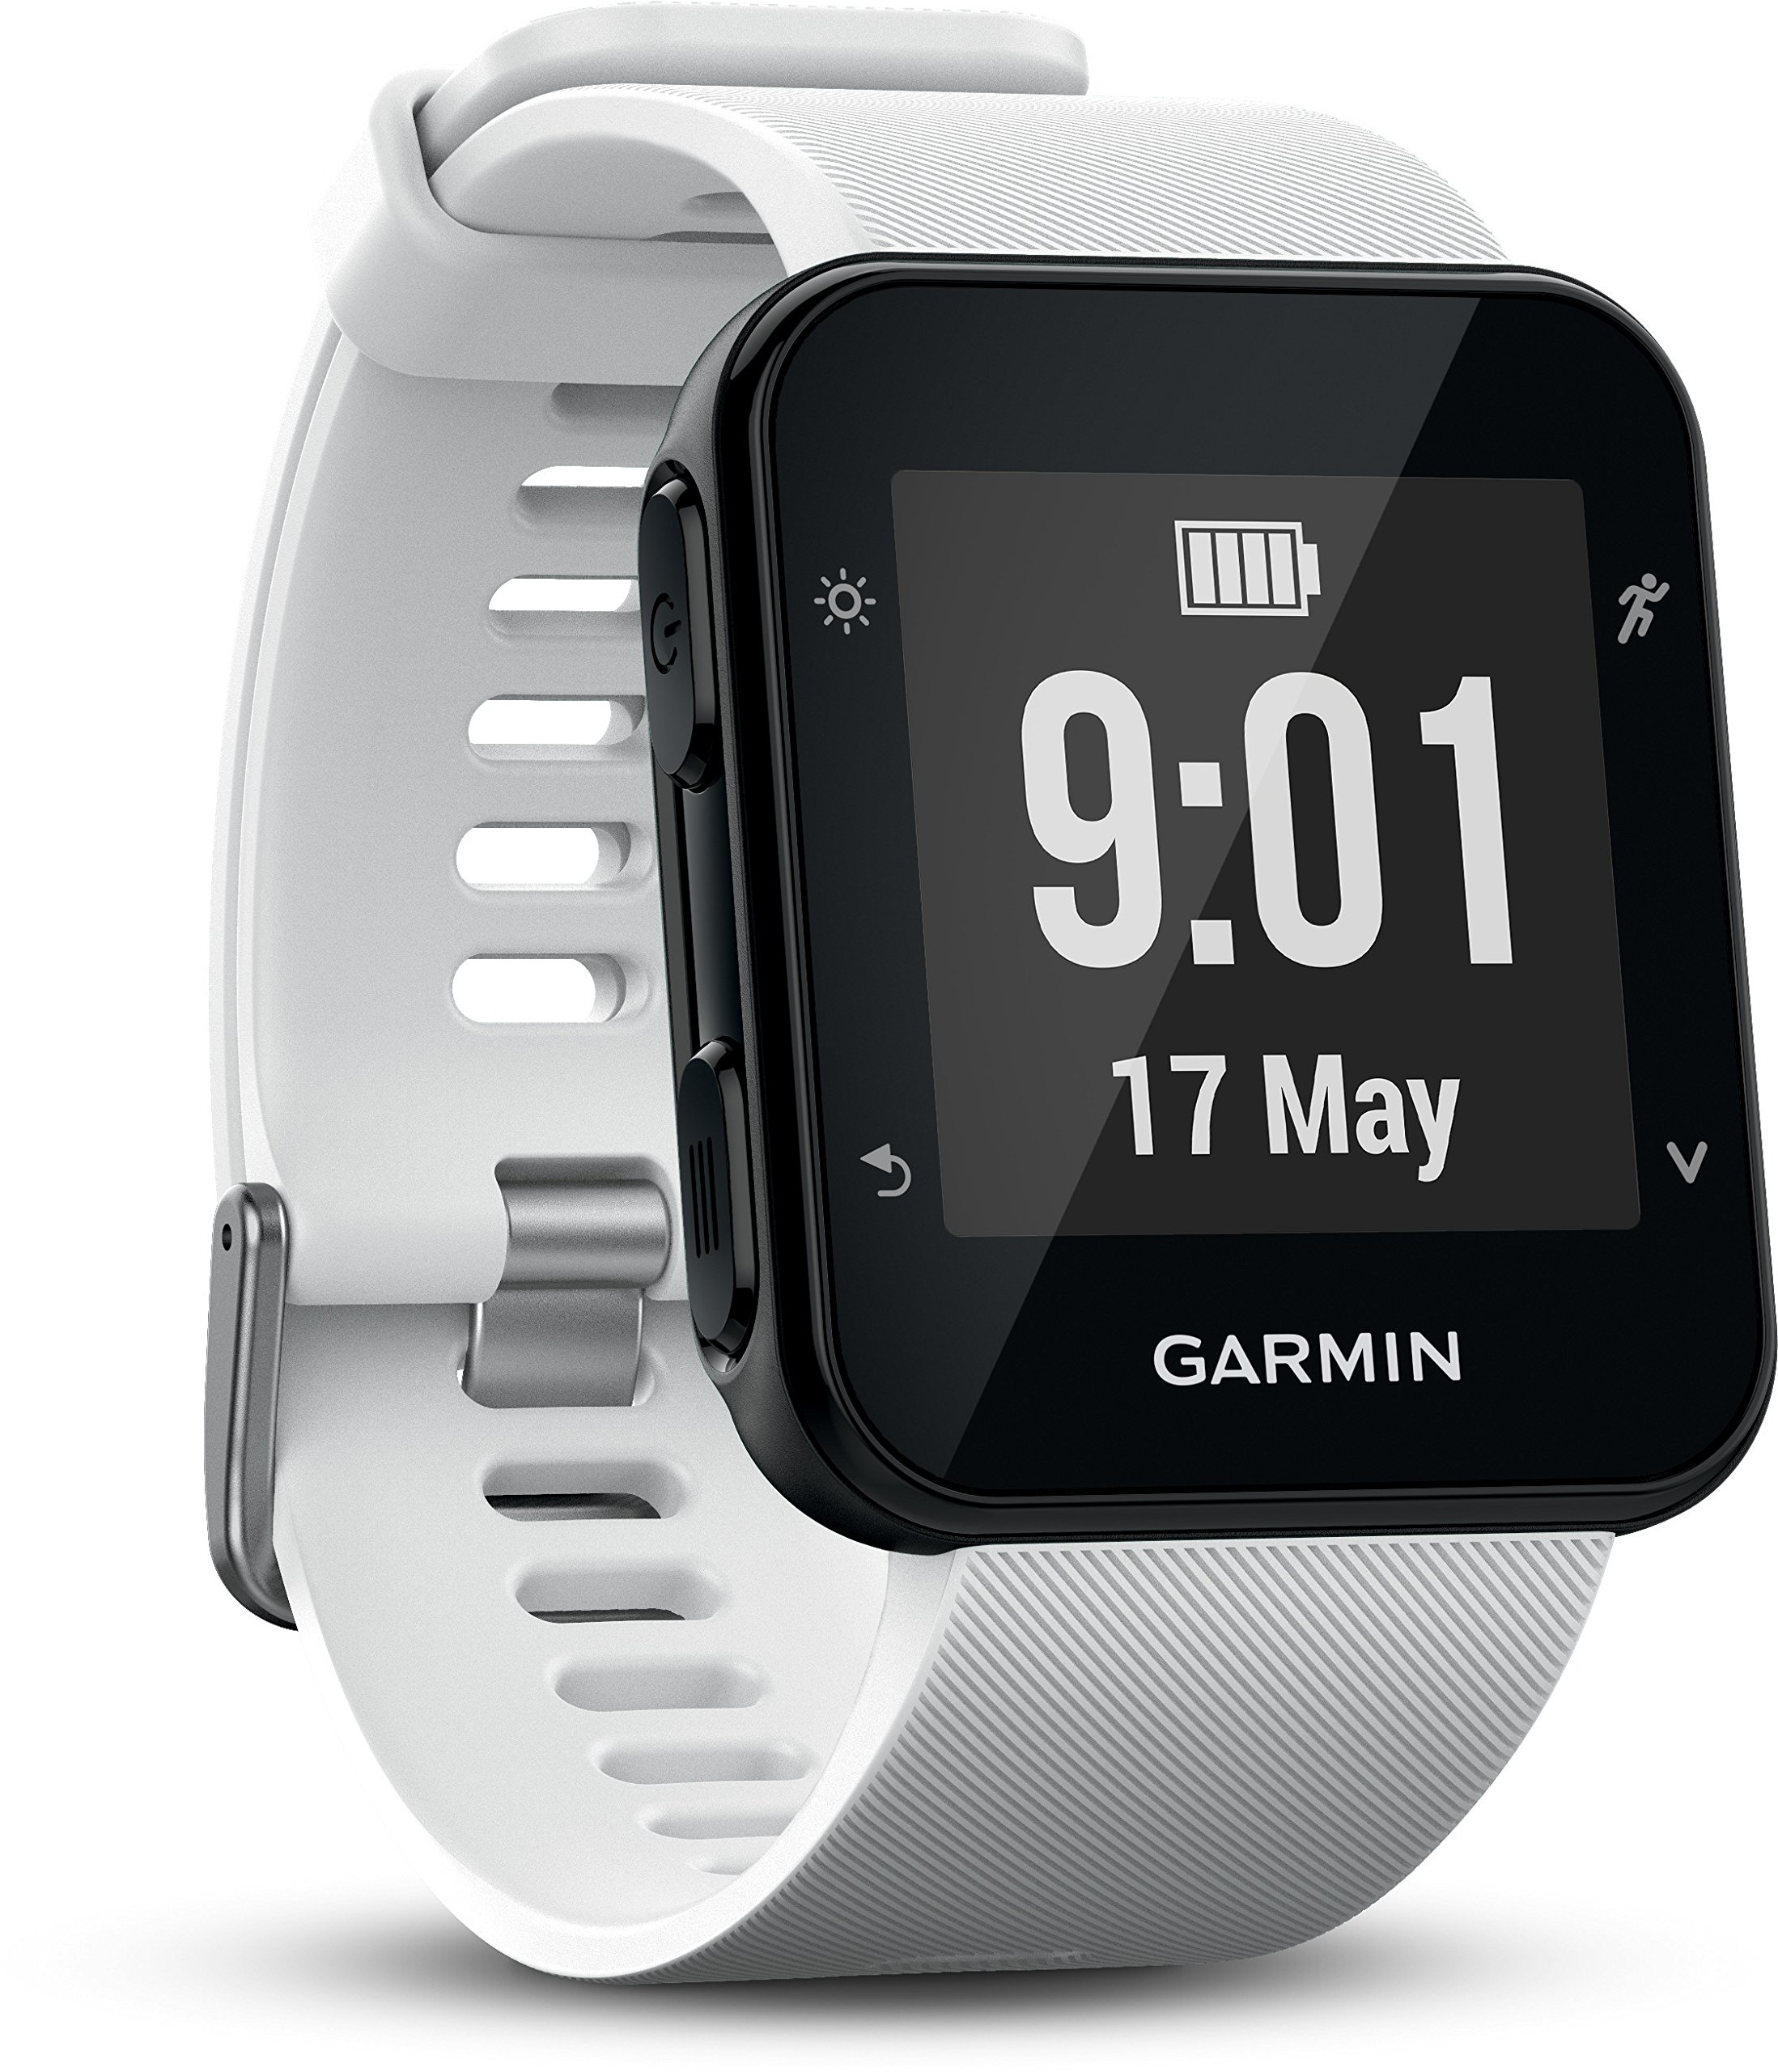 91A02iPiYdL - Garmin Forerunner 35 GPS Running Watch with Wrist-Based Heart Rate and Workouts,010-01689-12